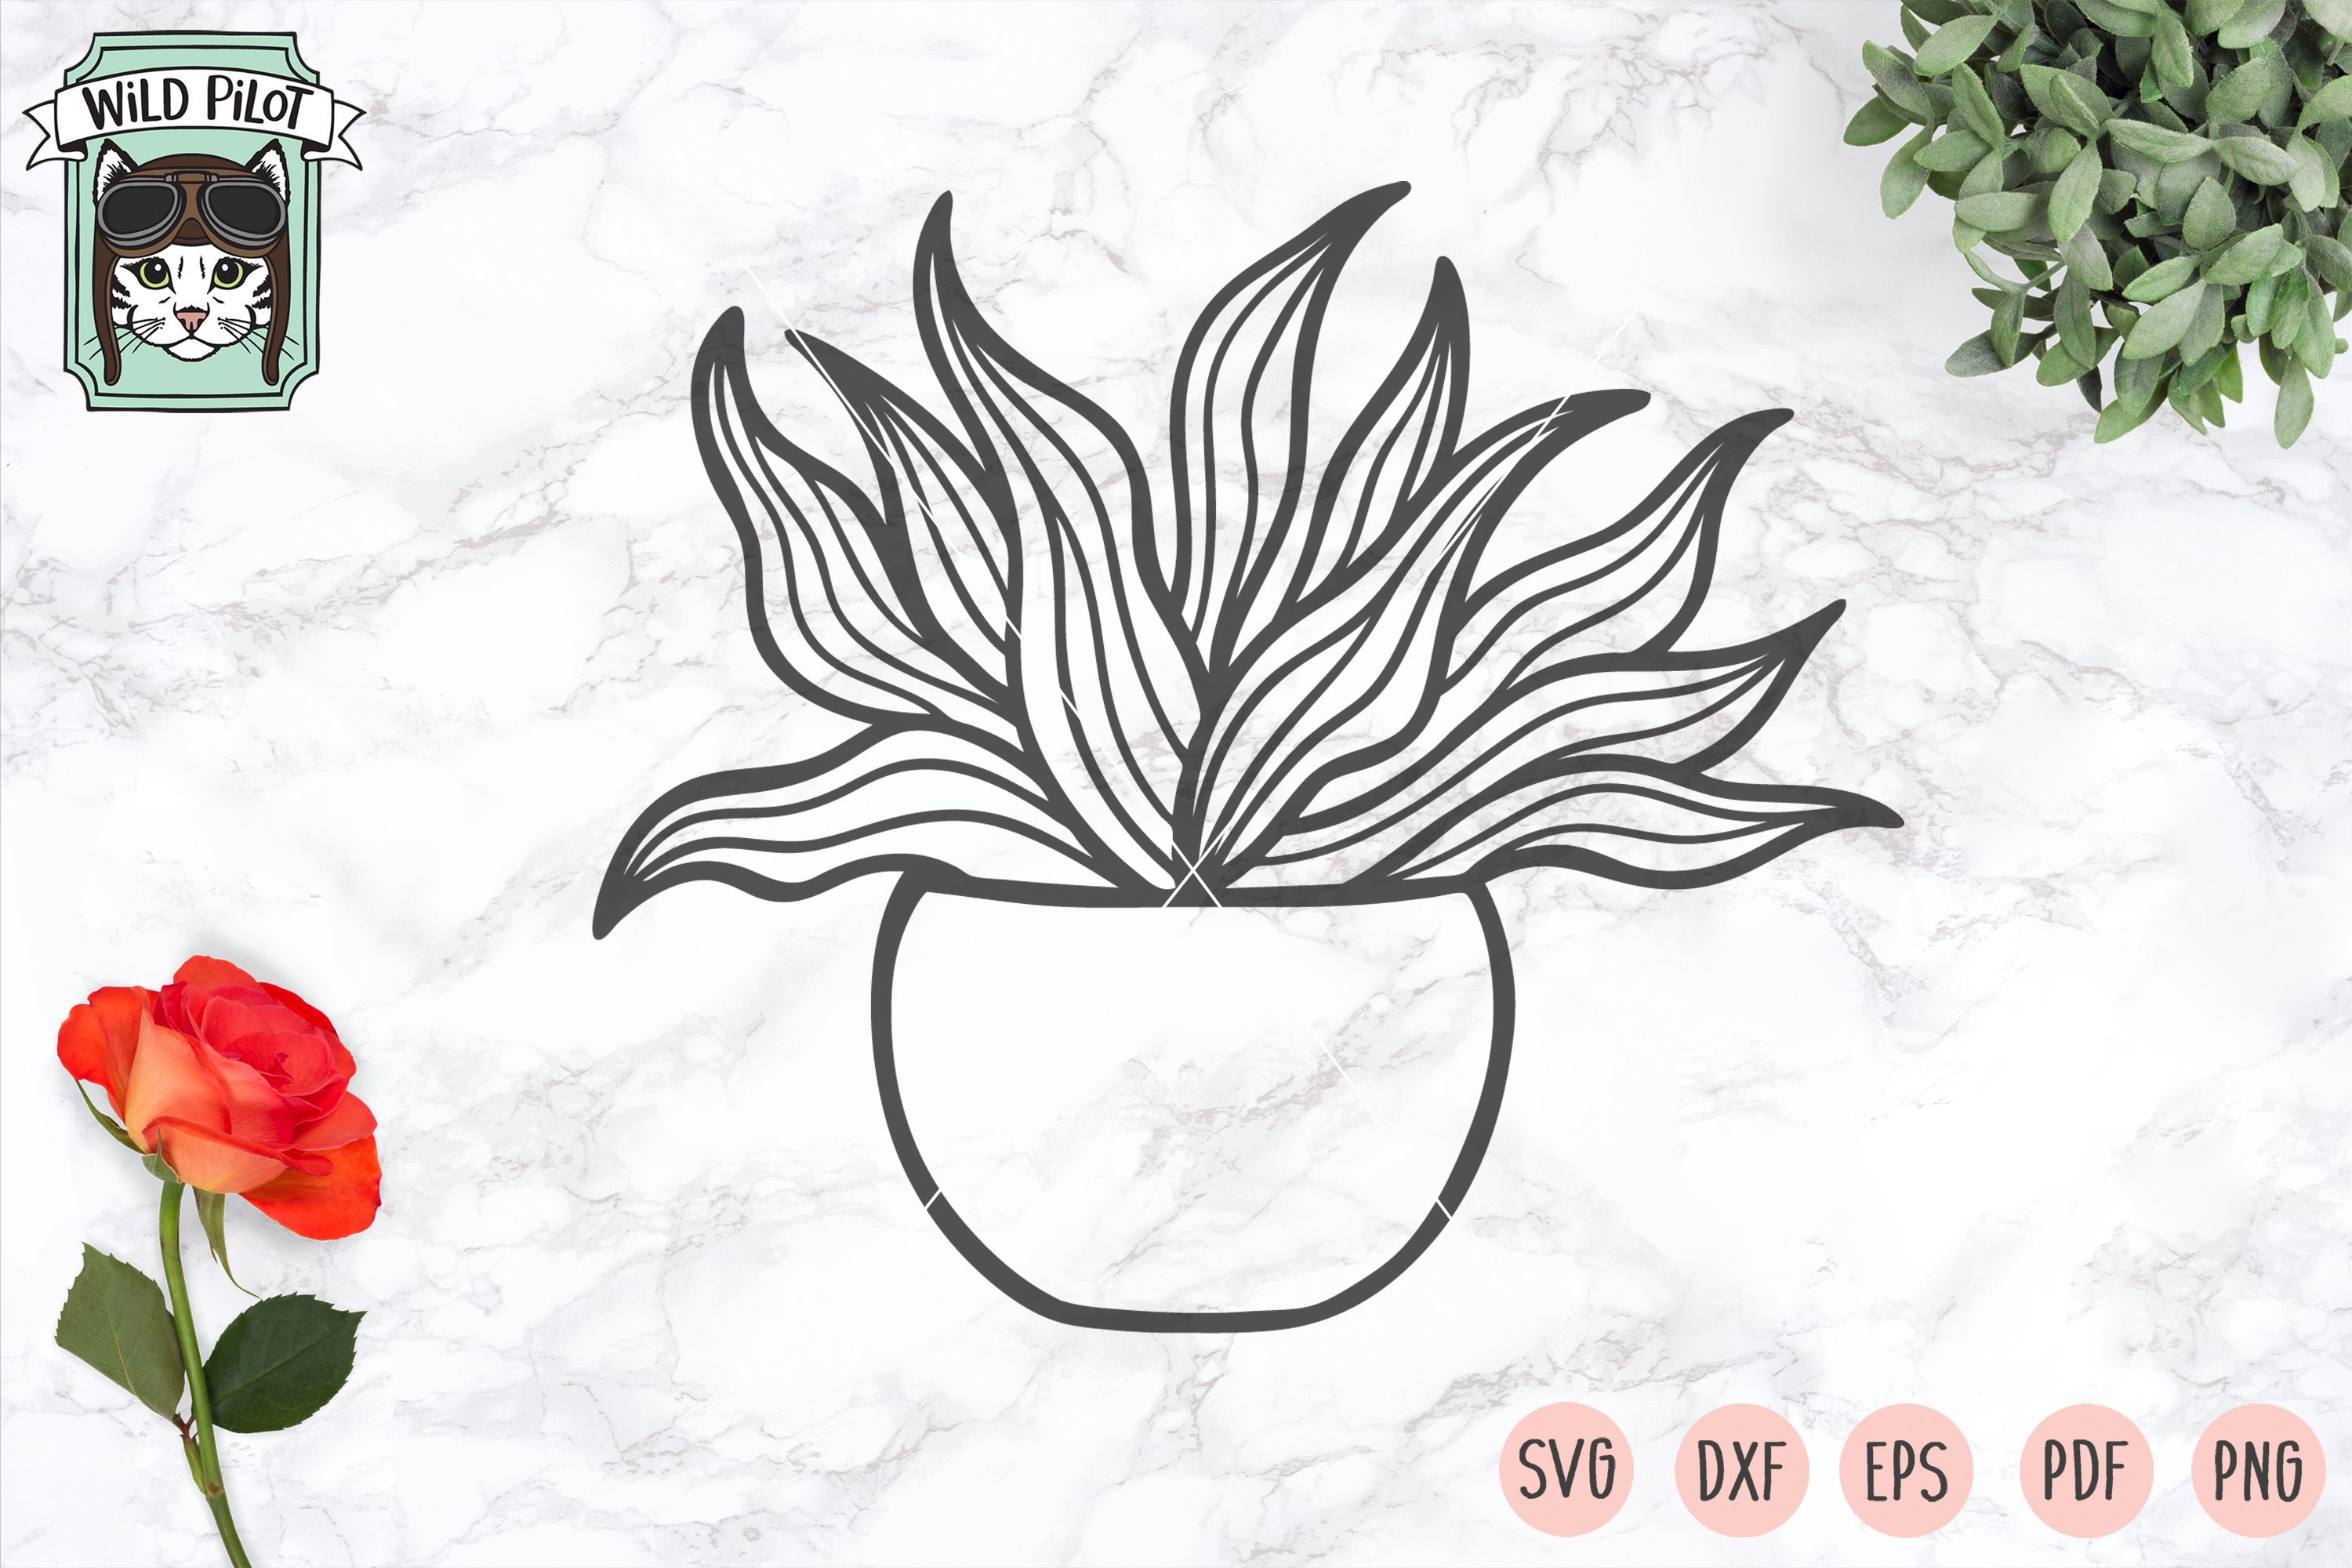 Plants SVG files, Potted Plants cut files, Planters, Garden example image 4